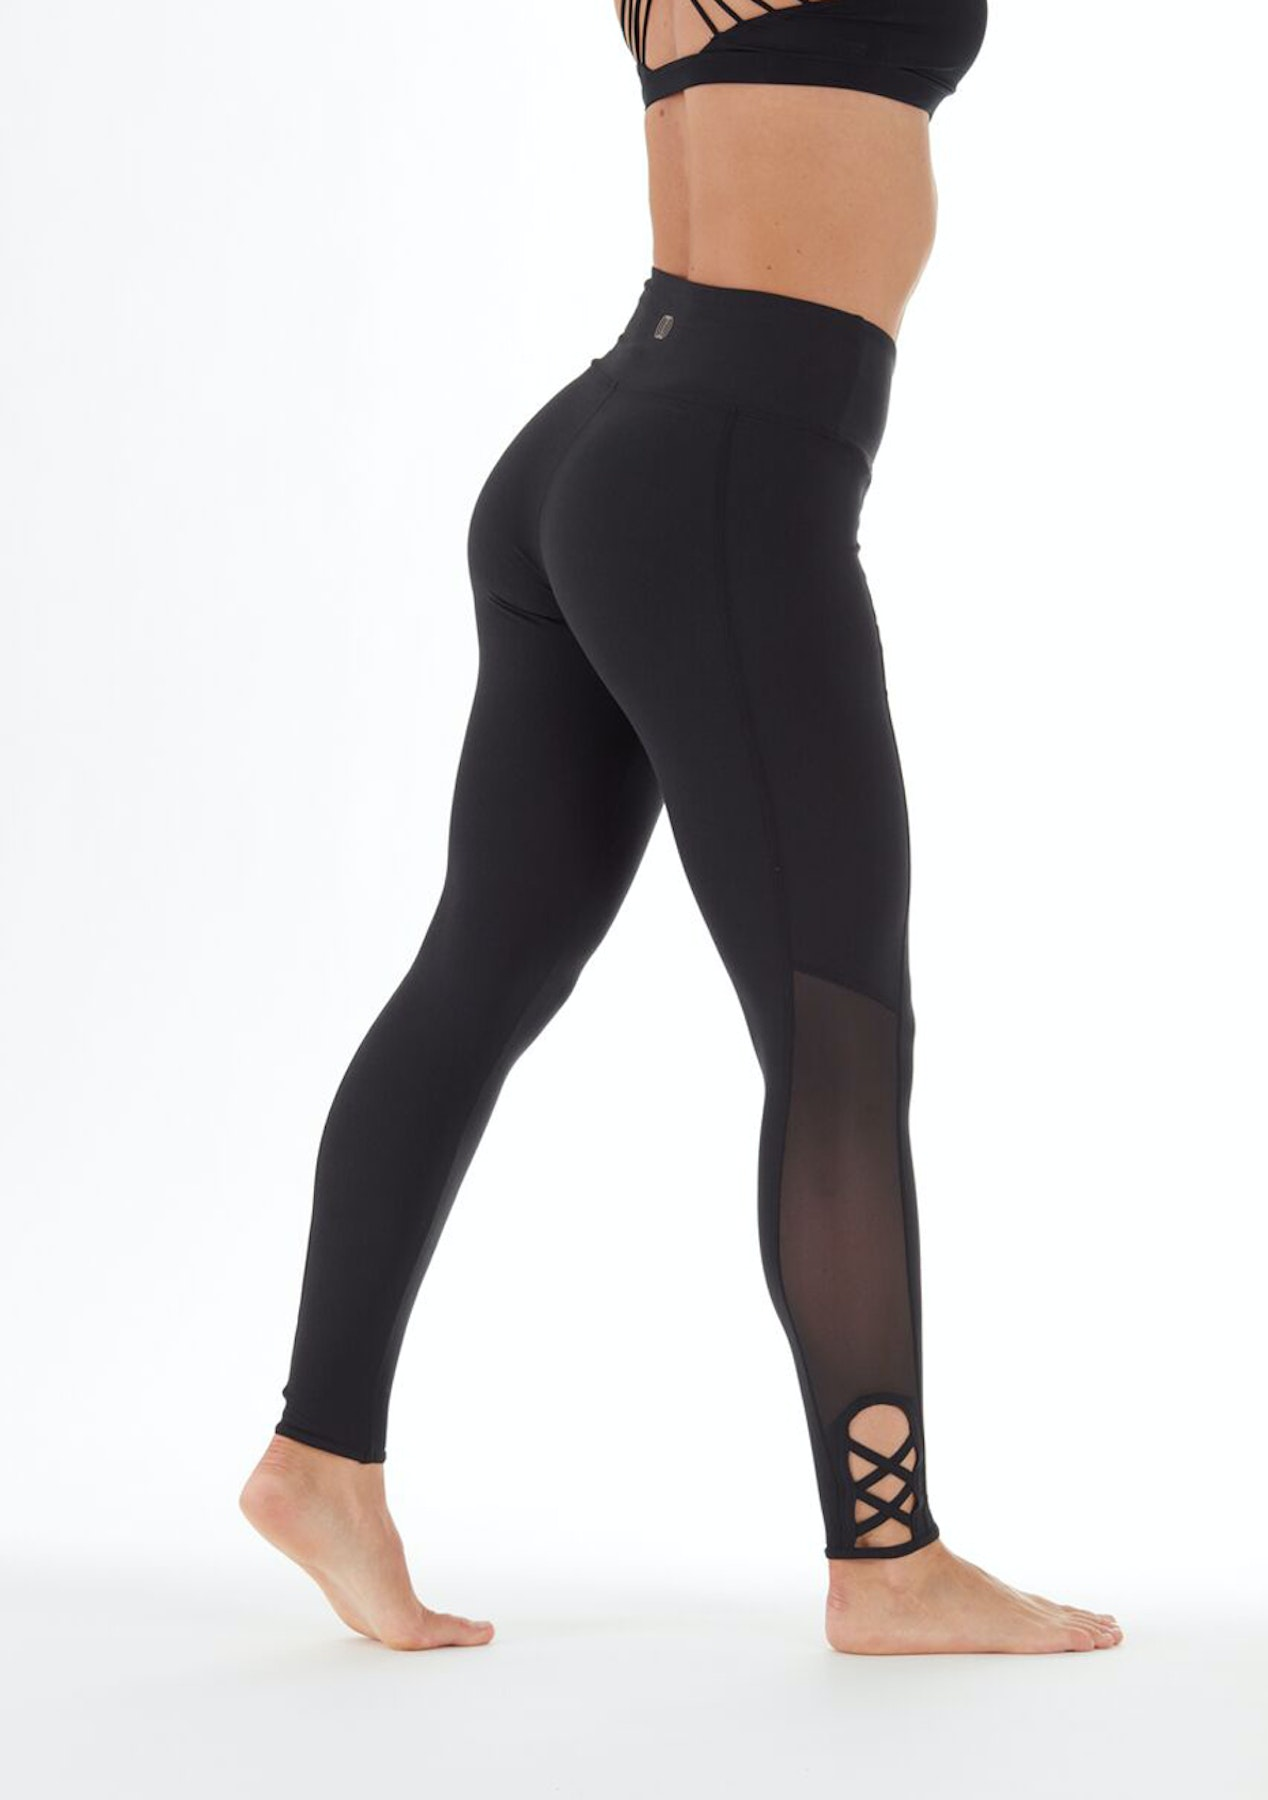 721e6314e2b39 Balance Collection by Marika - Gigi Hw Legging - Black - All New  Activewear: Nothing Over $40 - Onceit